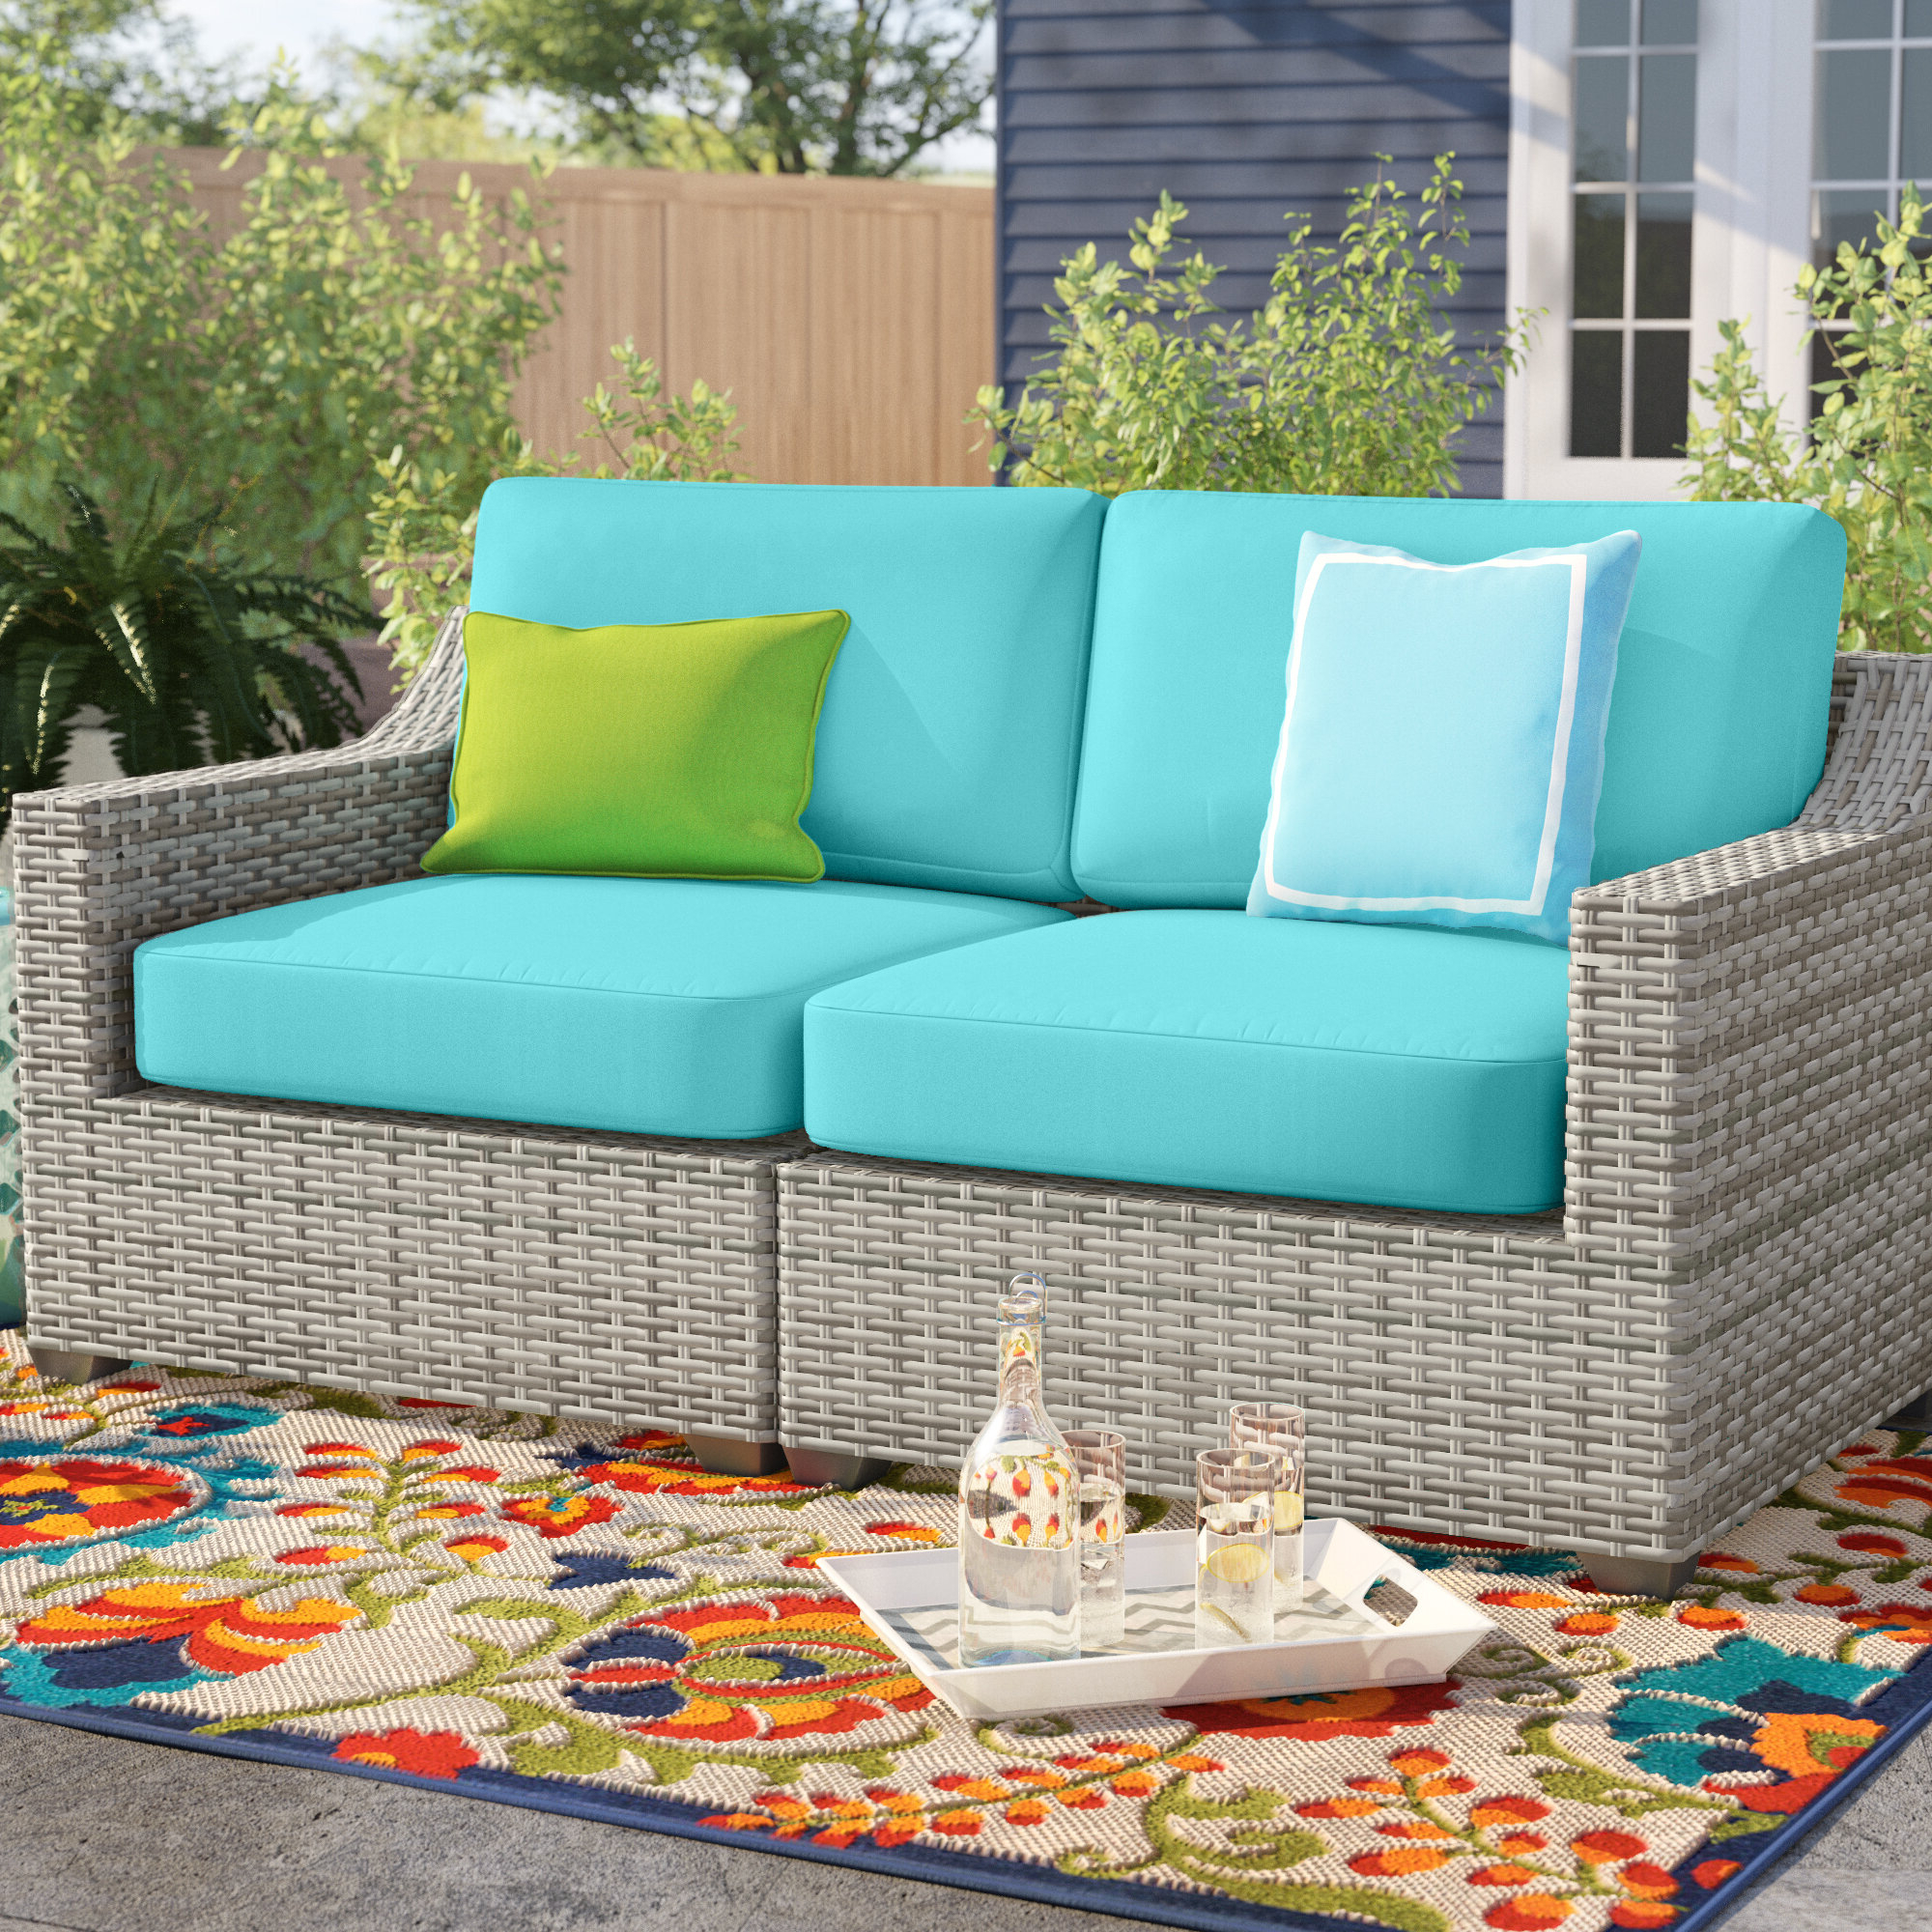 Falmouth Patio Sofas With Cushions Pertaining To 2020 Falmouth Loveseat With Cushions (View 10 of 20)